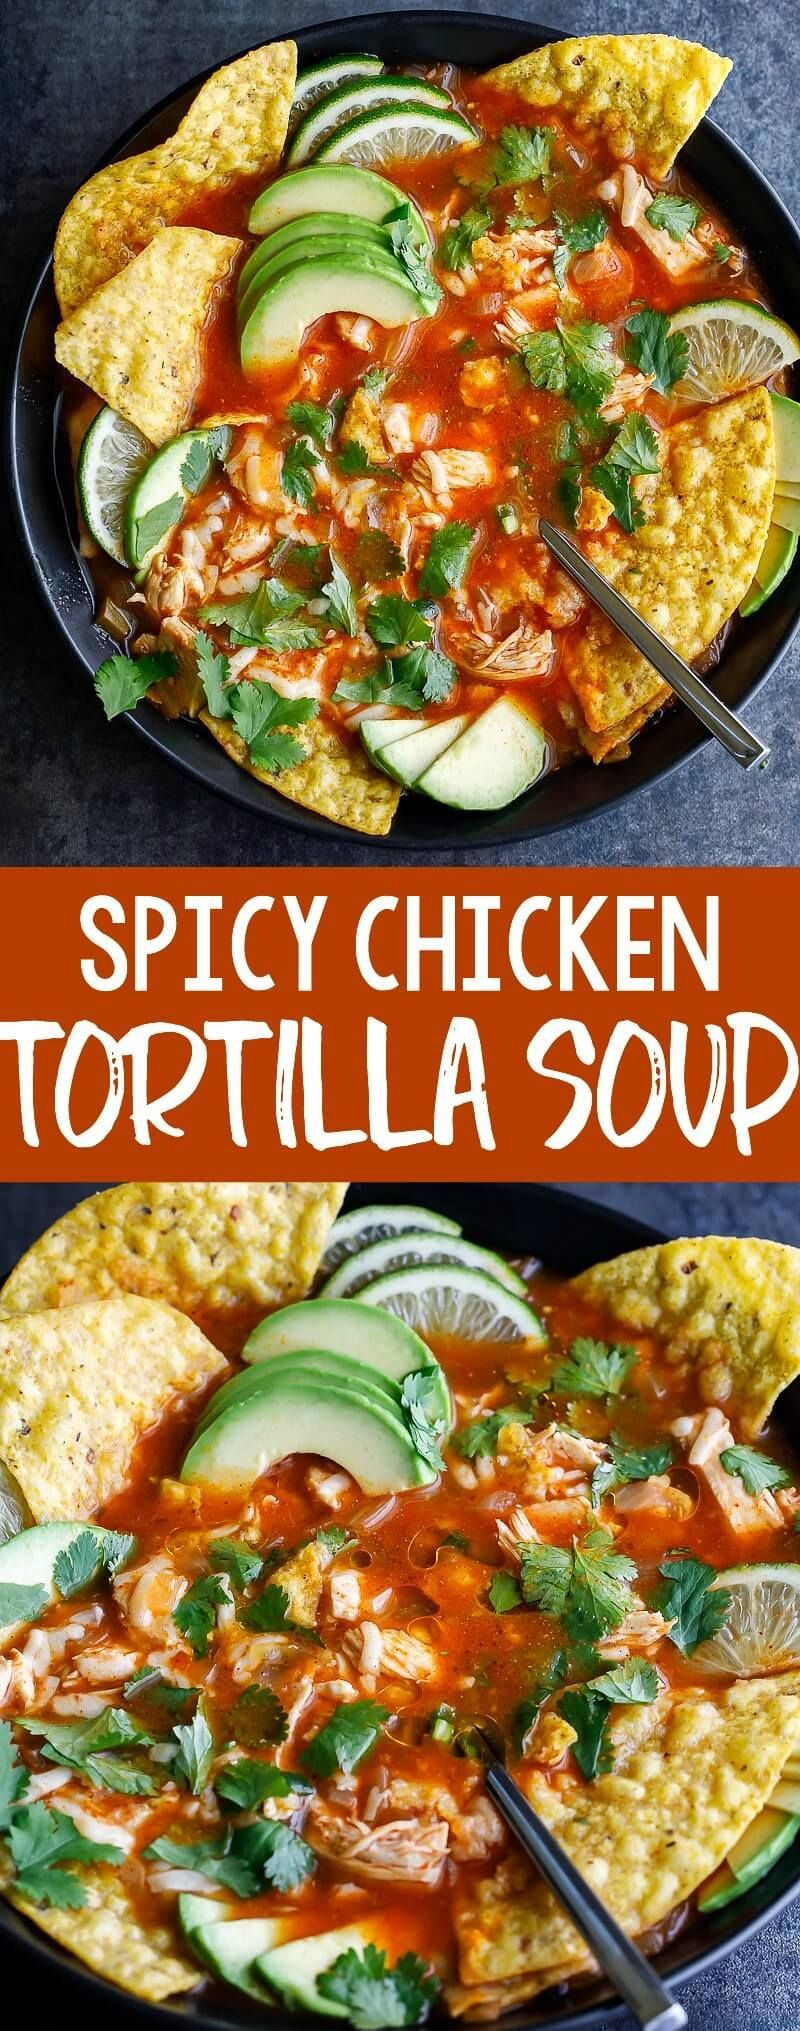 Spicy Chicken Tortilla Soup is fantastically flavorful and oh so easy to make!This tasty one-pot so